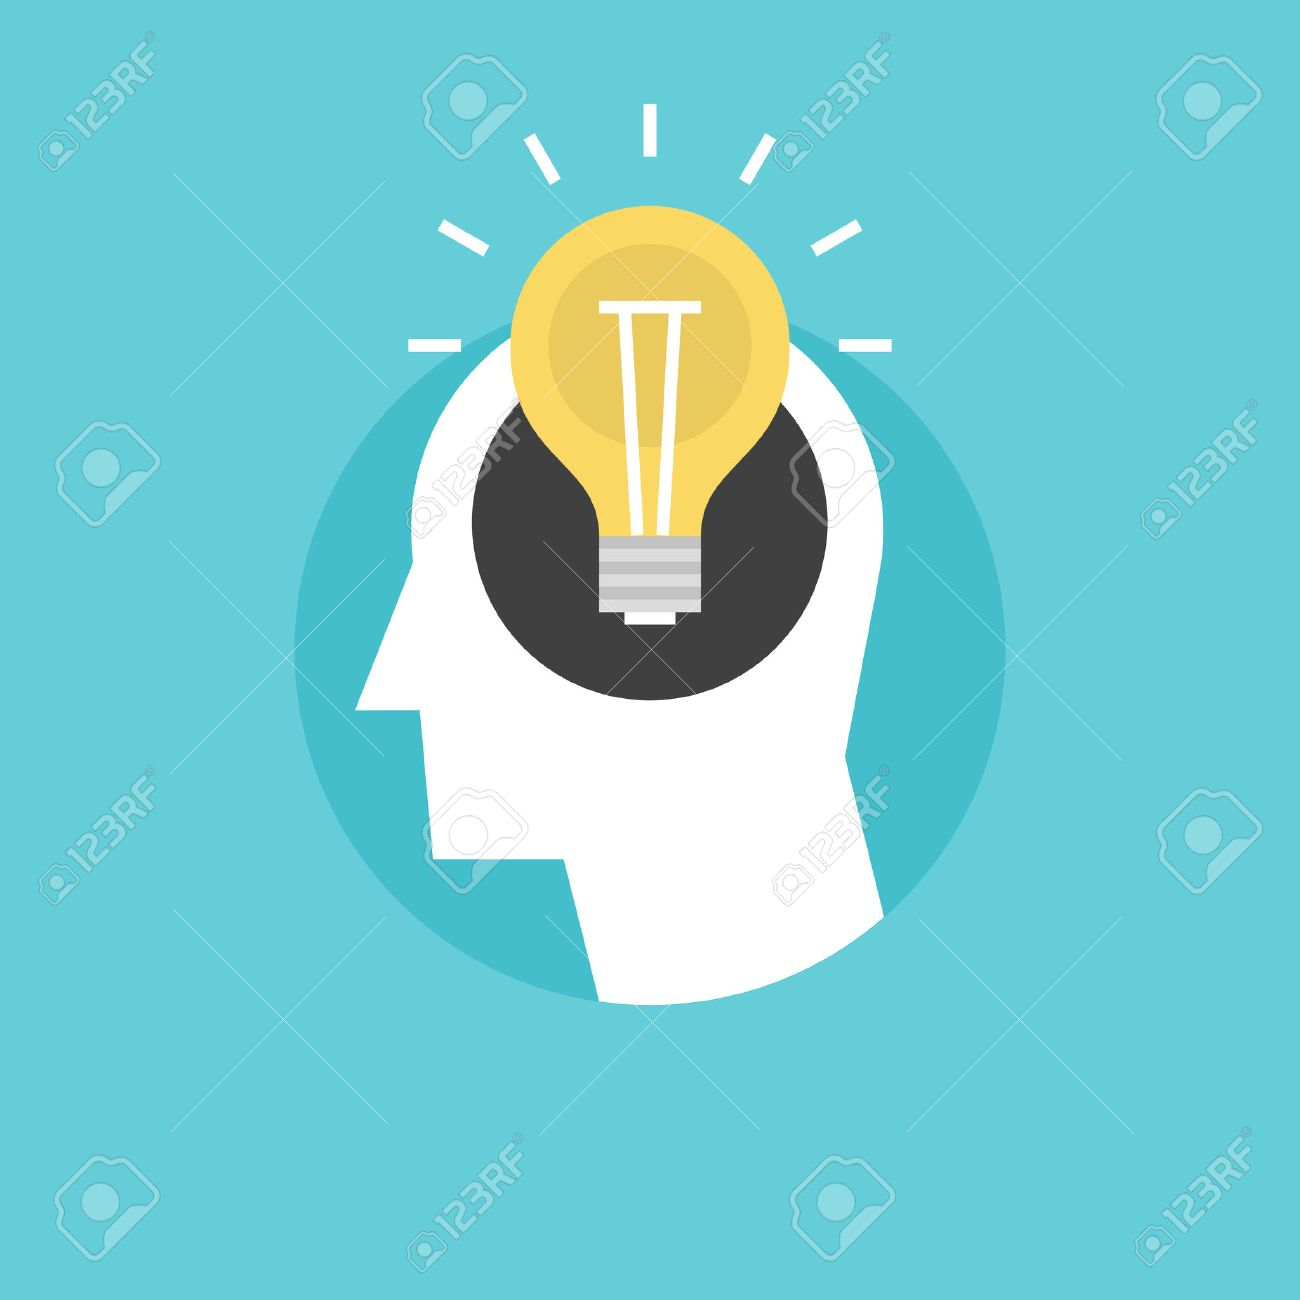 New Bright Idea Form Human Head Thinking About Success Solution Lightbulb As Creativity Metaphor